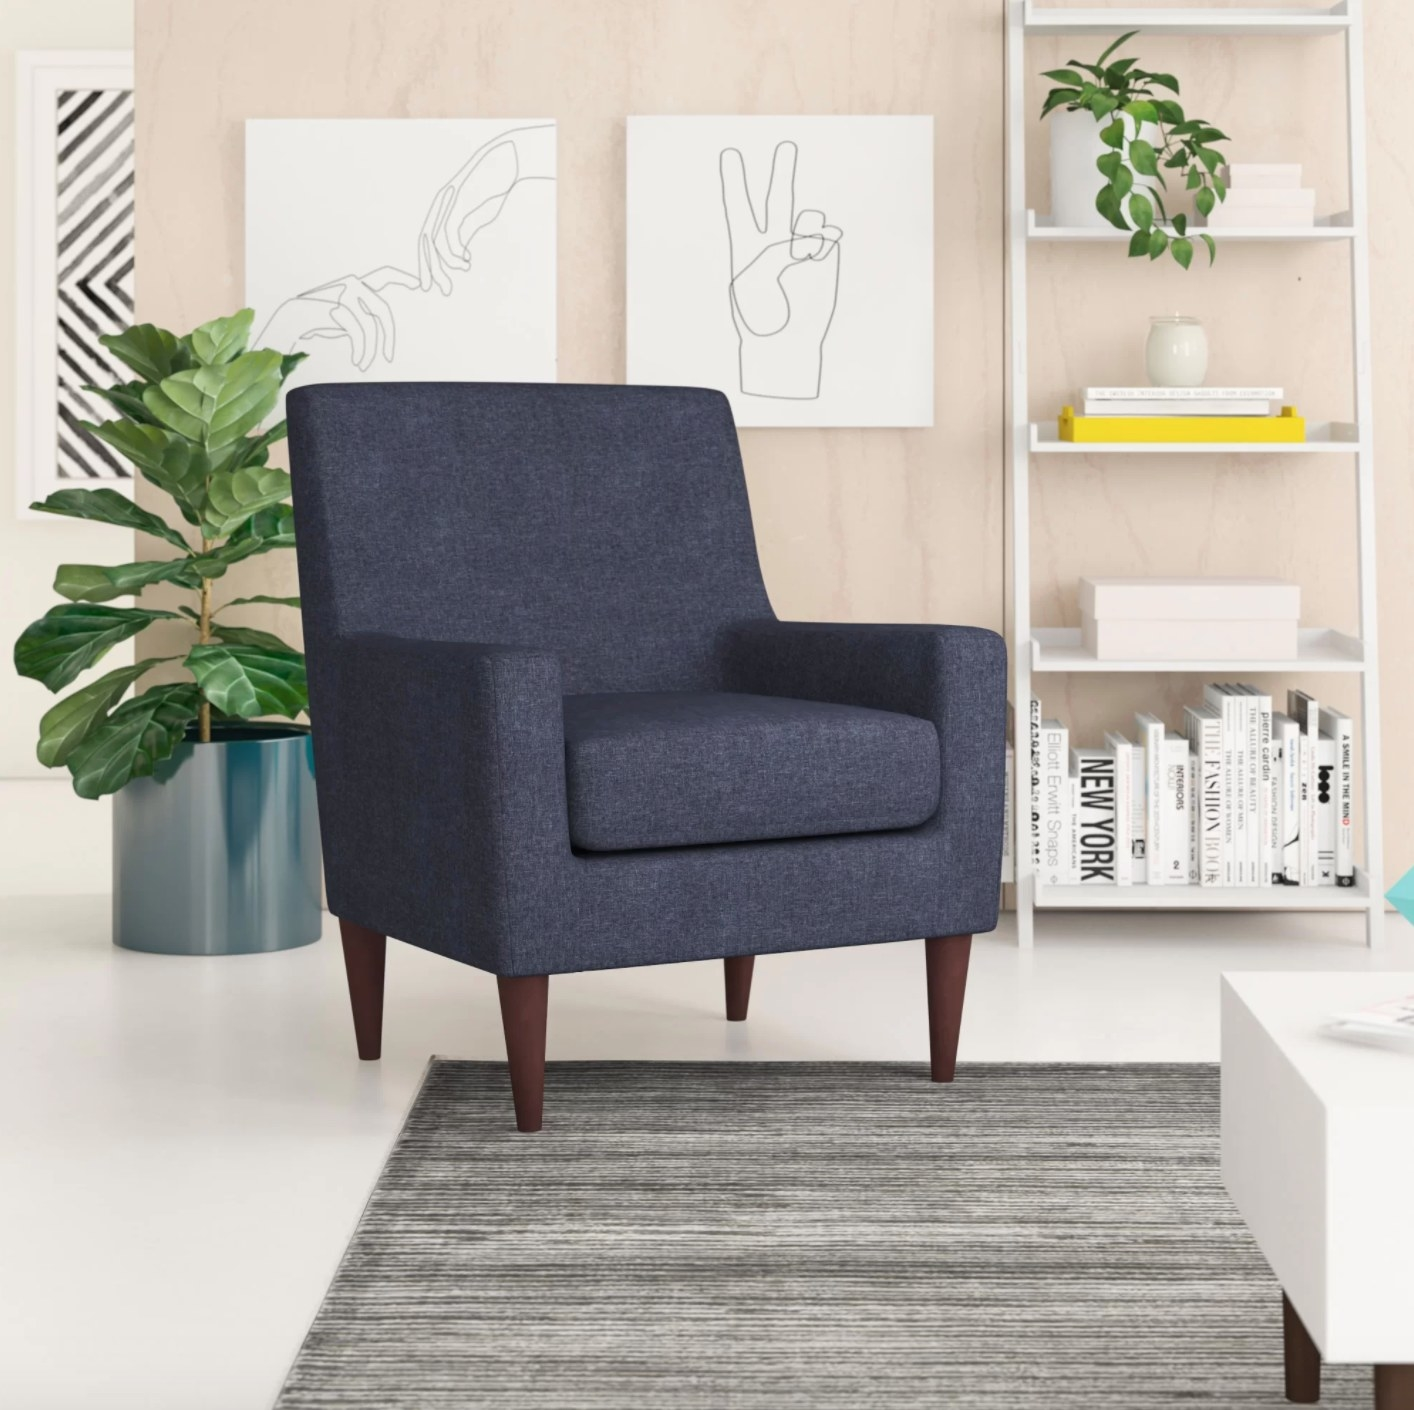 The armchair in navy